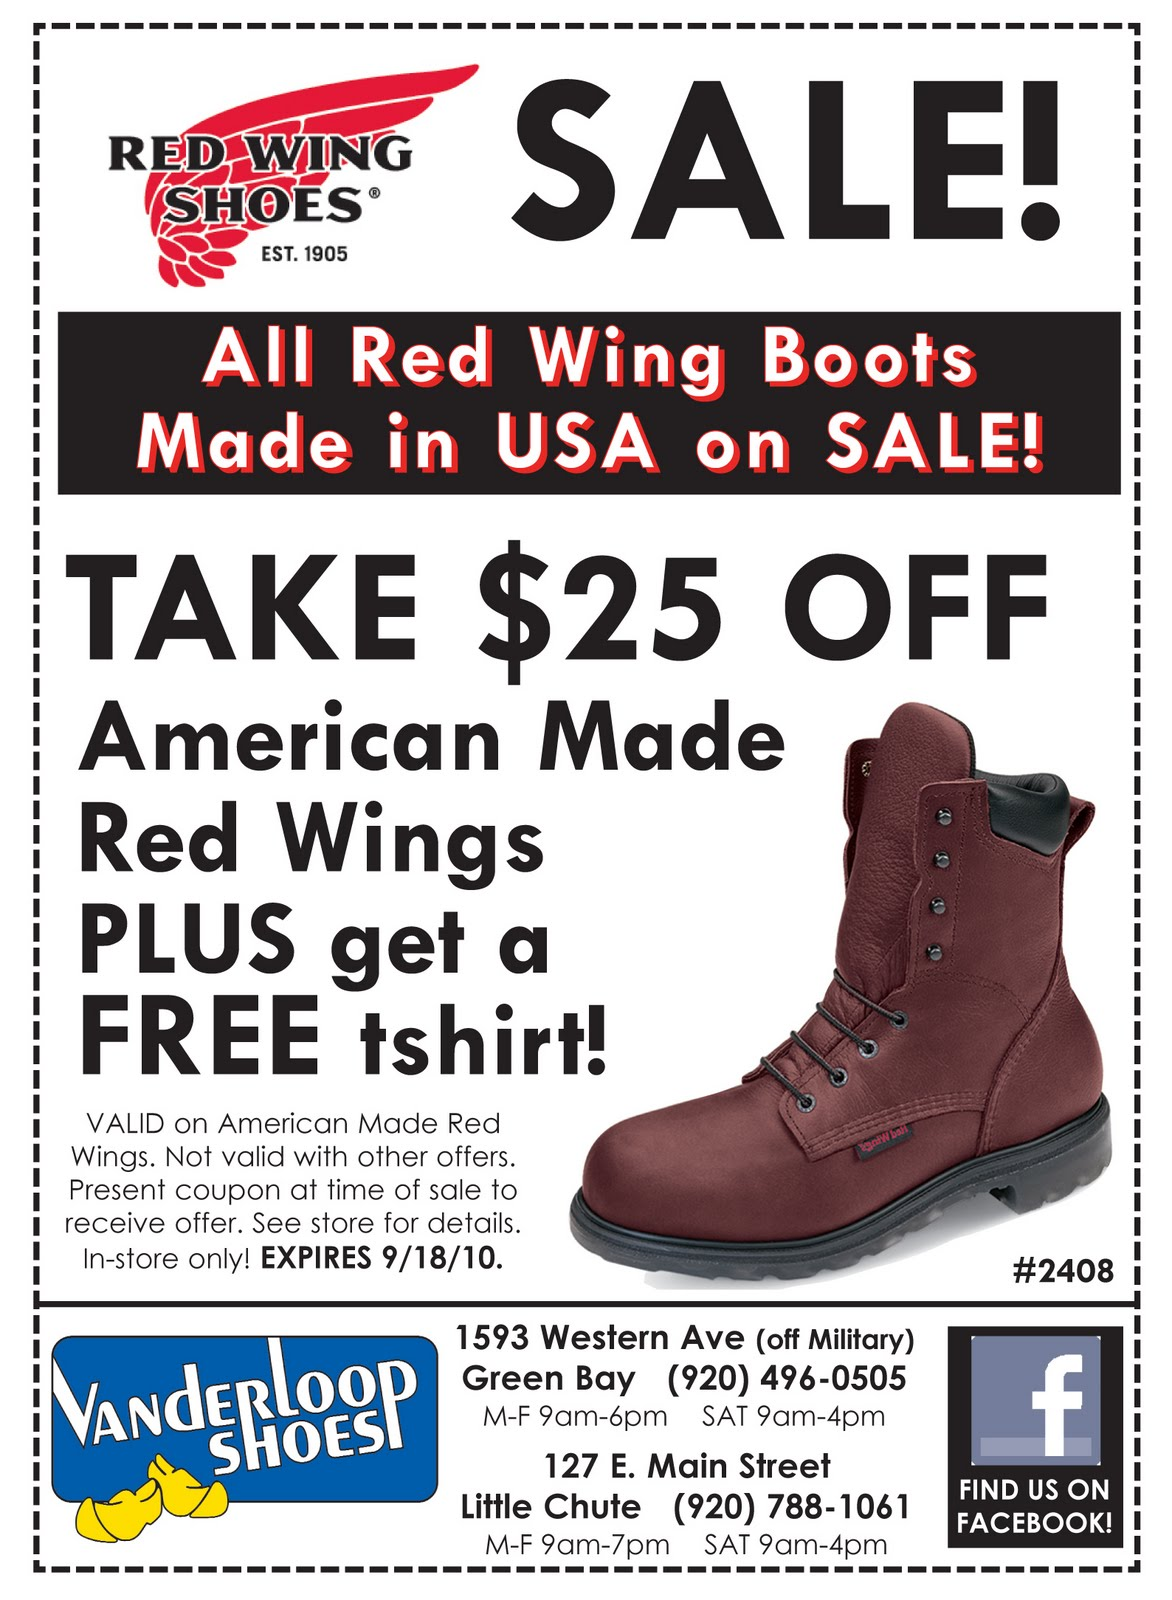 Red Wing Boots Coupon Online - Stores Selling Wigs